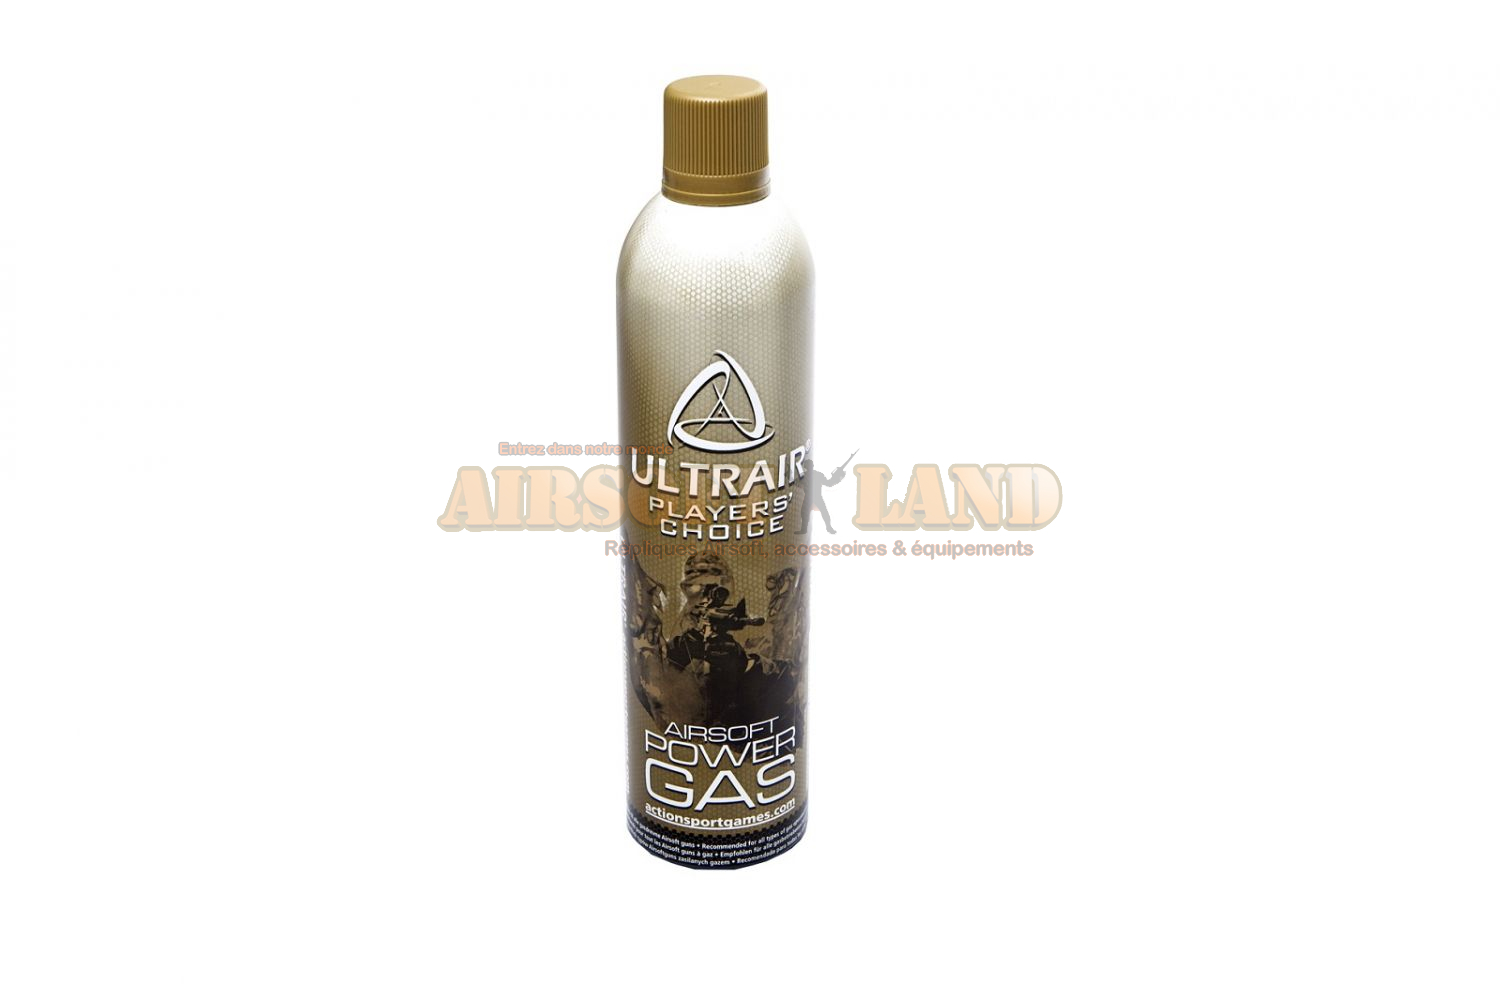 new ultrair power gas 570 ml